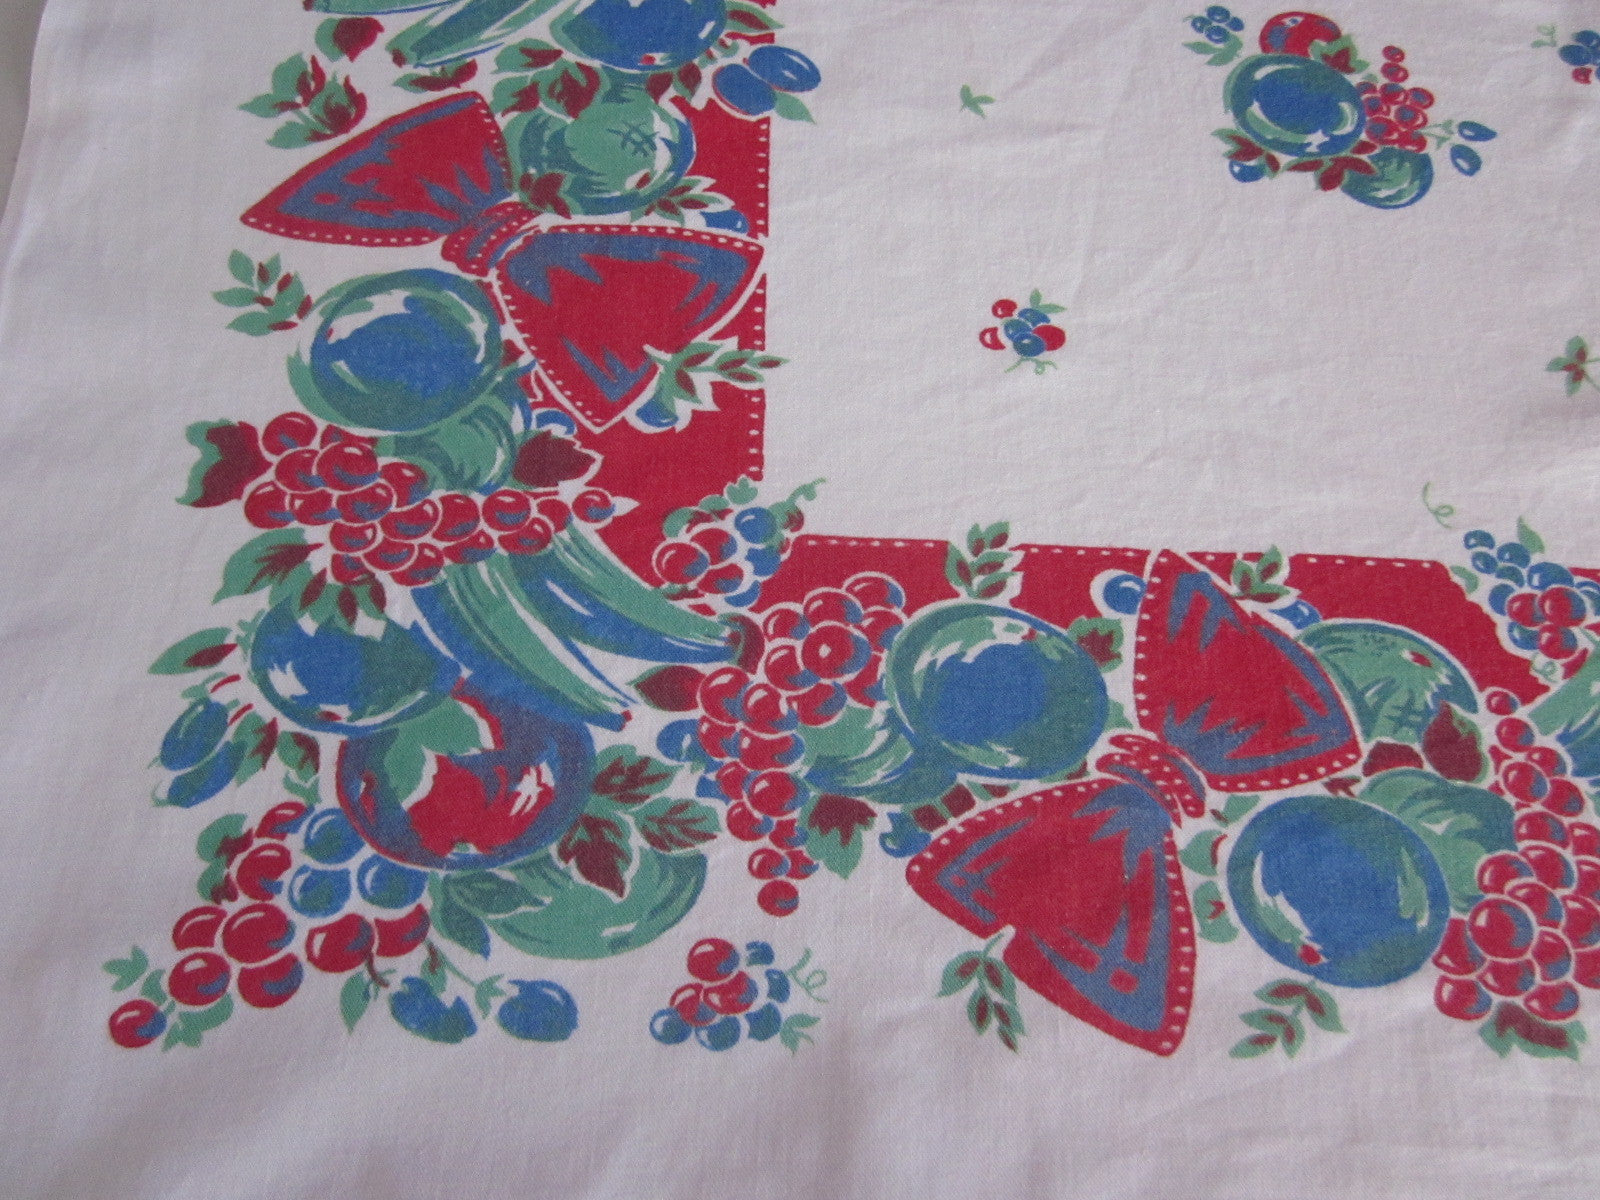 Broderie Primary Fruit Bows Red Vintage Printed Tablecloth (50 X 44)